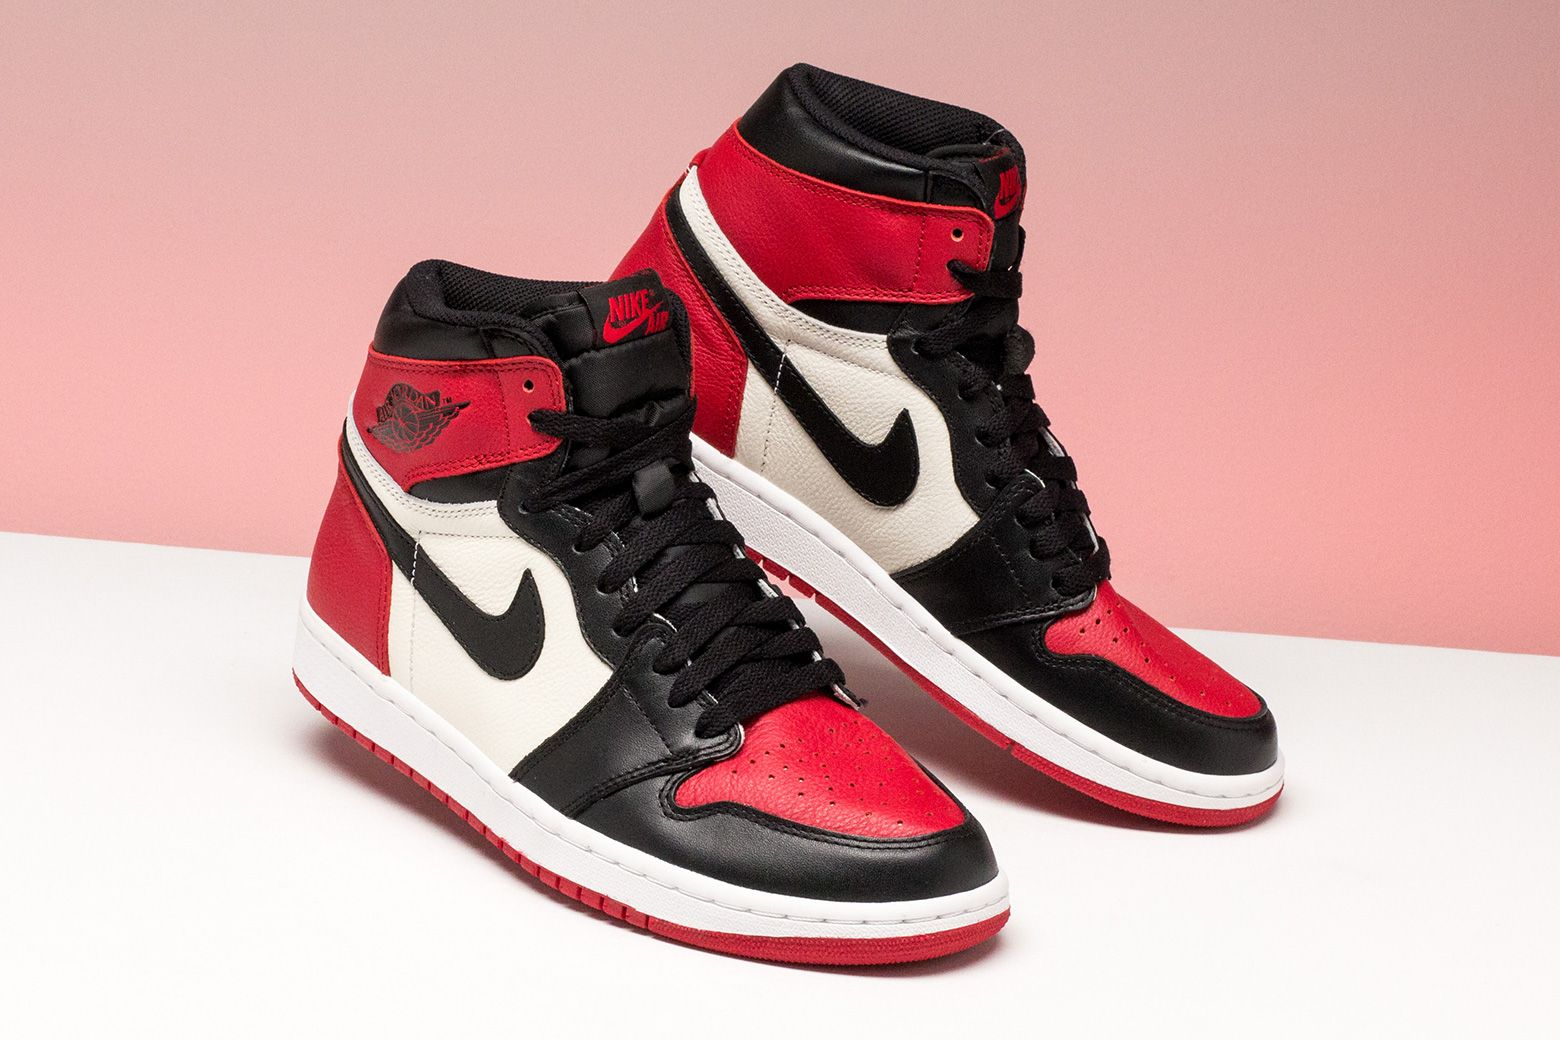 3a4253b296526f Jordan 1 Retro High Red Black  Bred Toe  in 2019